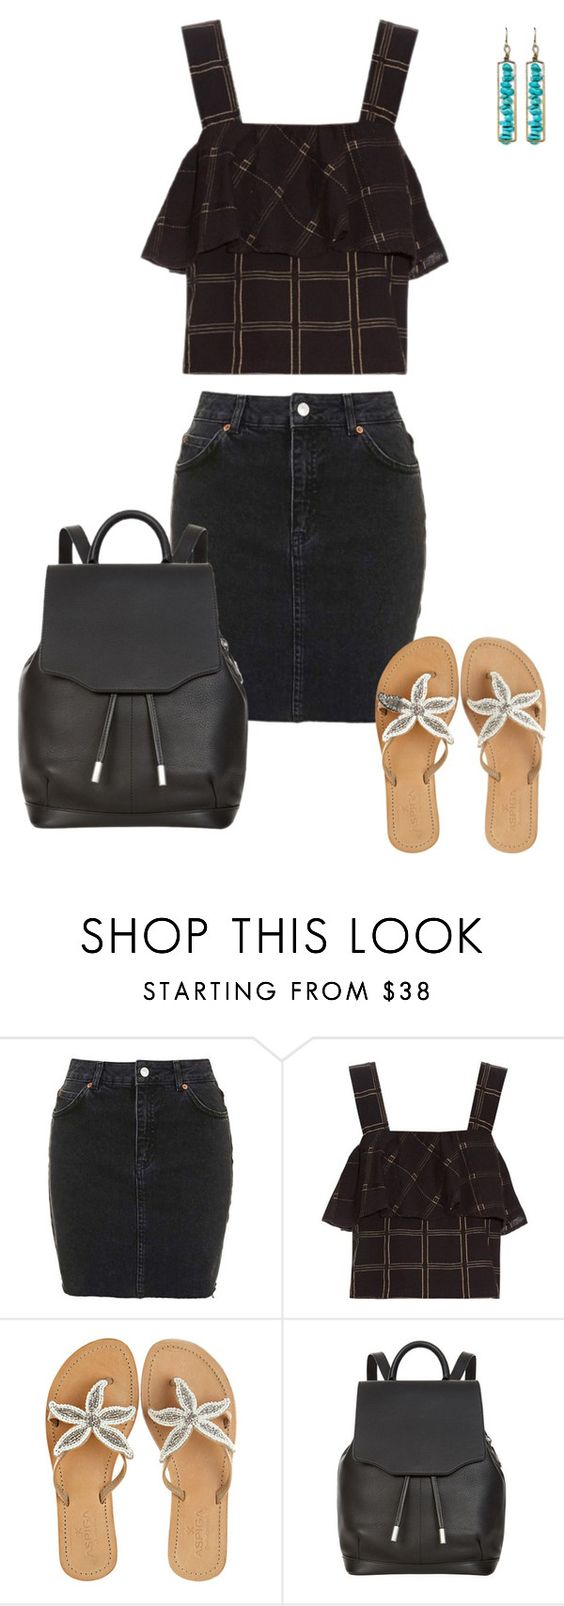 """Untitled #1010"" by julz28520 ❤ liked on Polyvore featuring Topshop, ace & jig, ASPIGA and rag & bone"